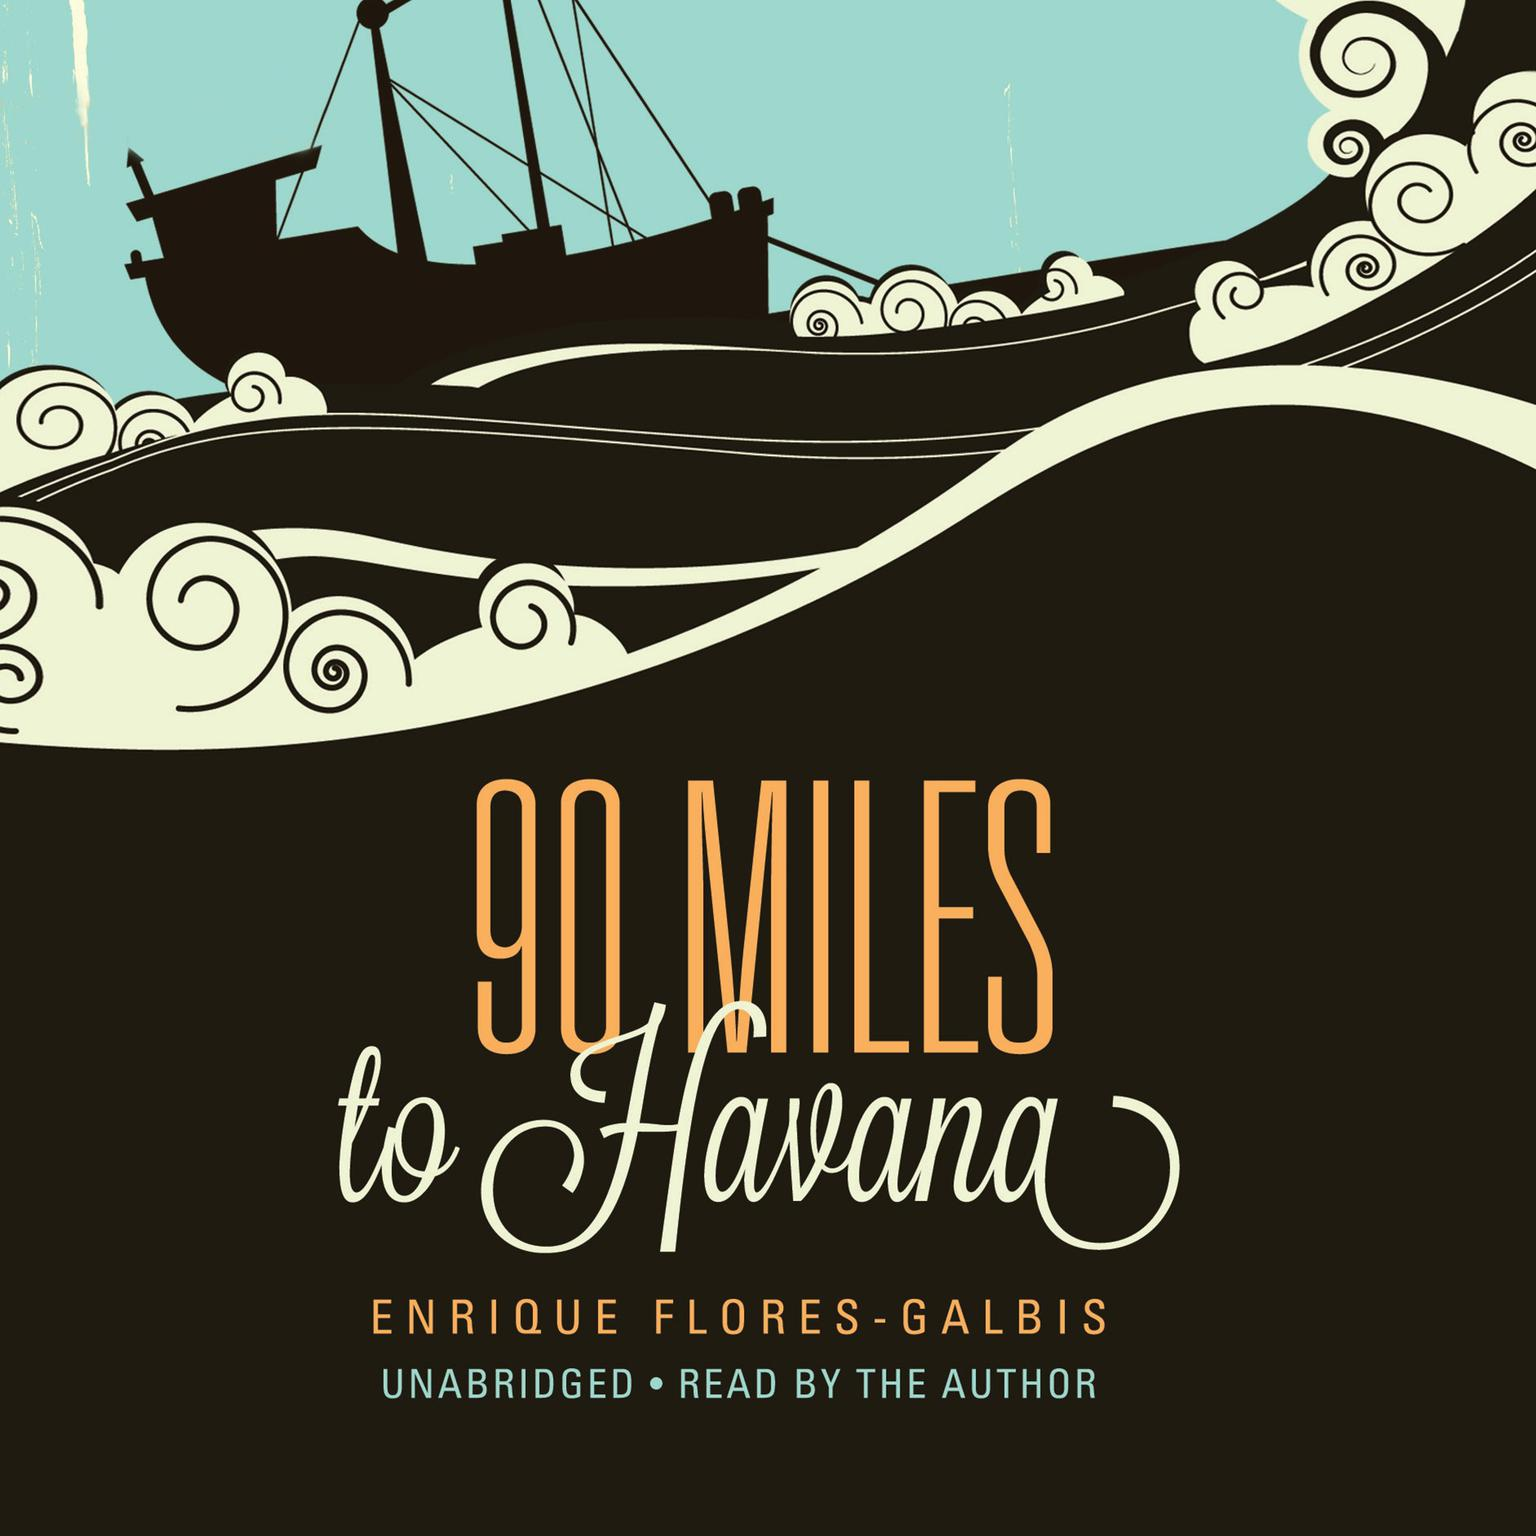 90 miles to havana 90 miles to havana when julian's parents make the heartbreaking decision to send him and his two brothers away from cuba to miami via the pedro pan operation.